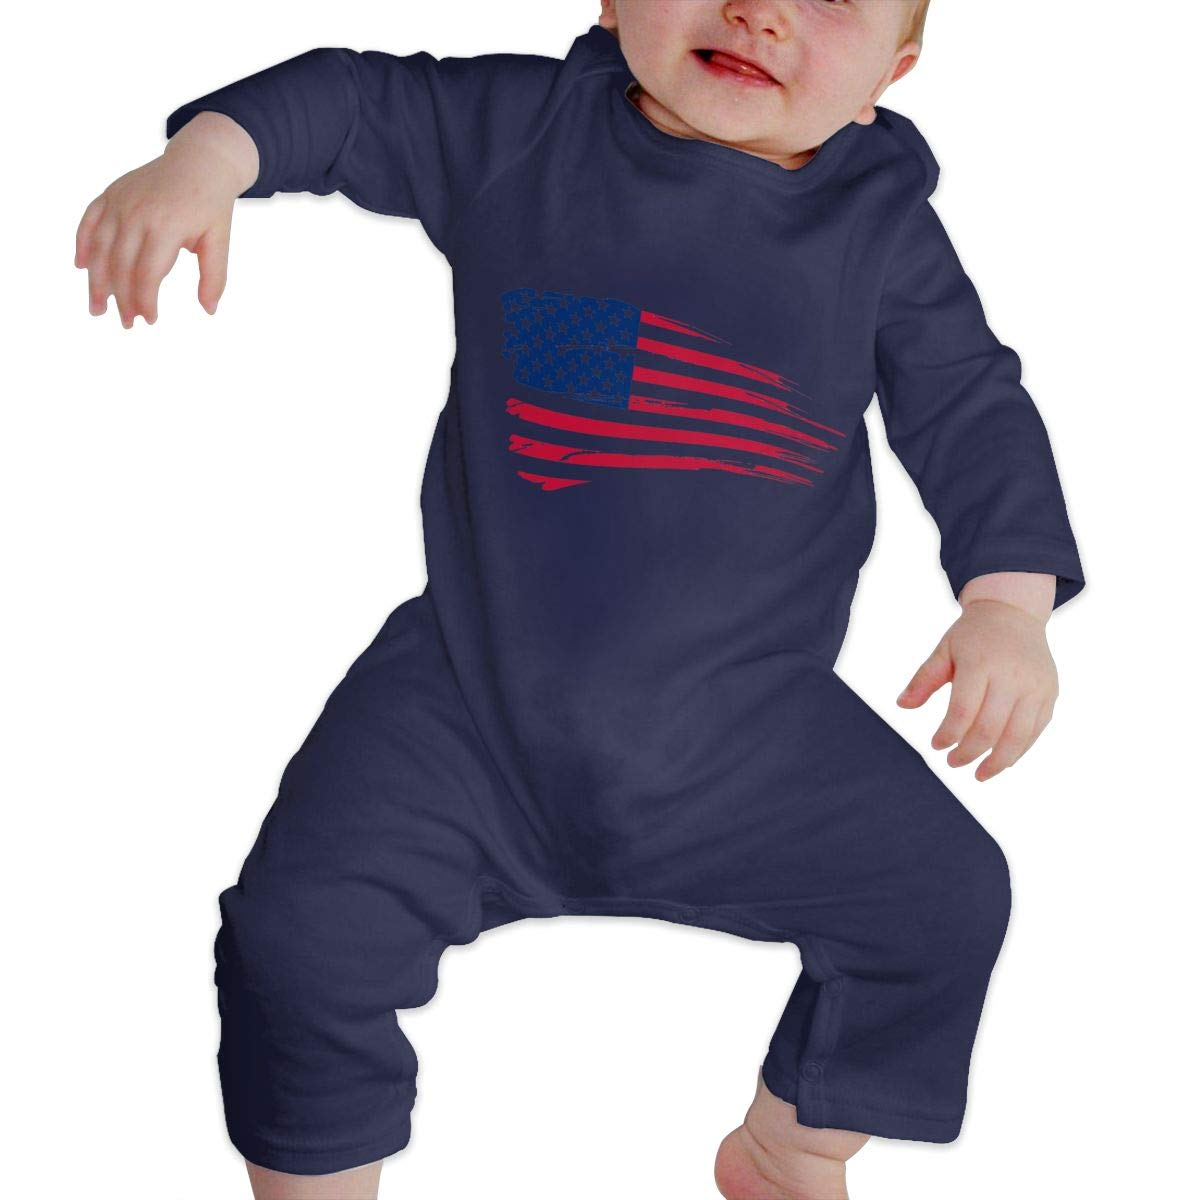 LBJQ8 American Flag Newborn Kids Baby Boys Organic Cotton Romper Jumpsuit Bodysuit